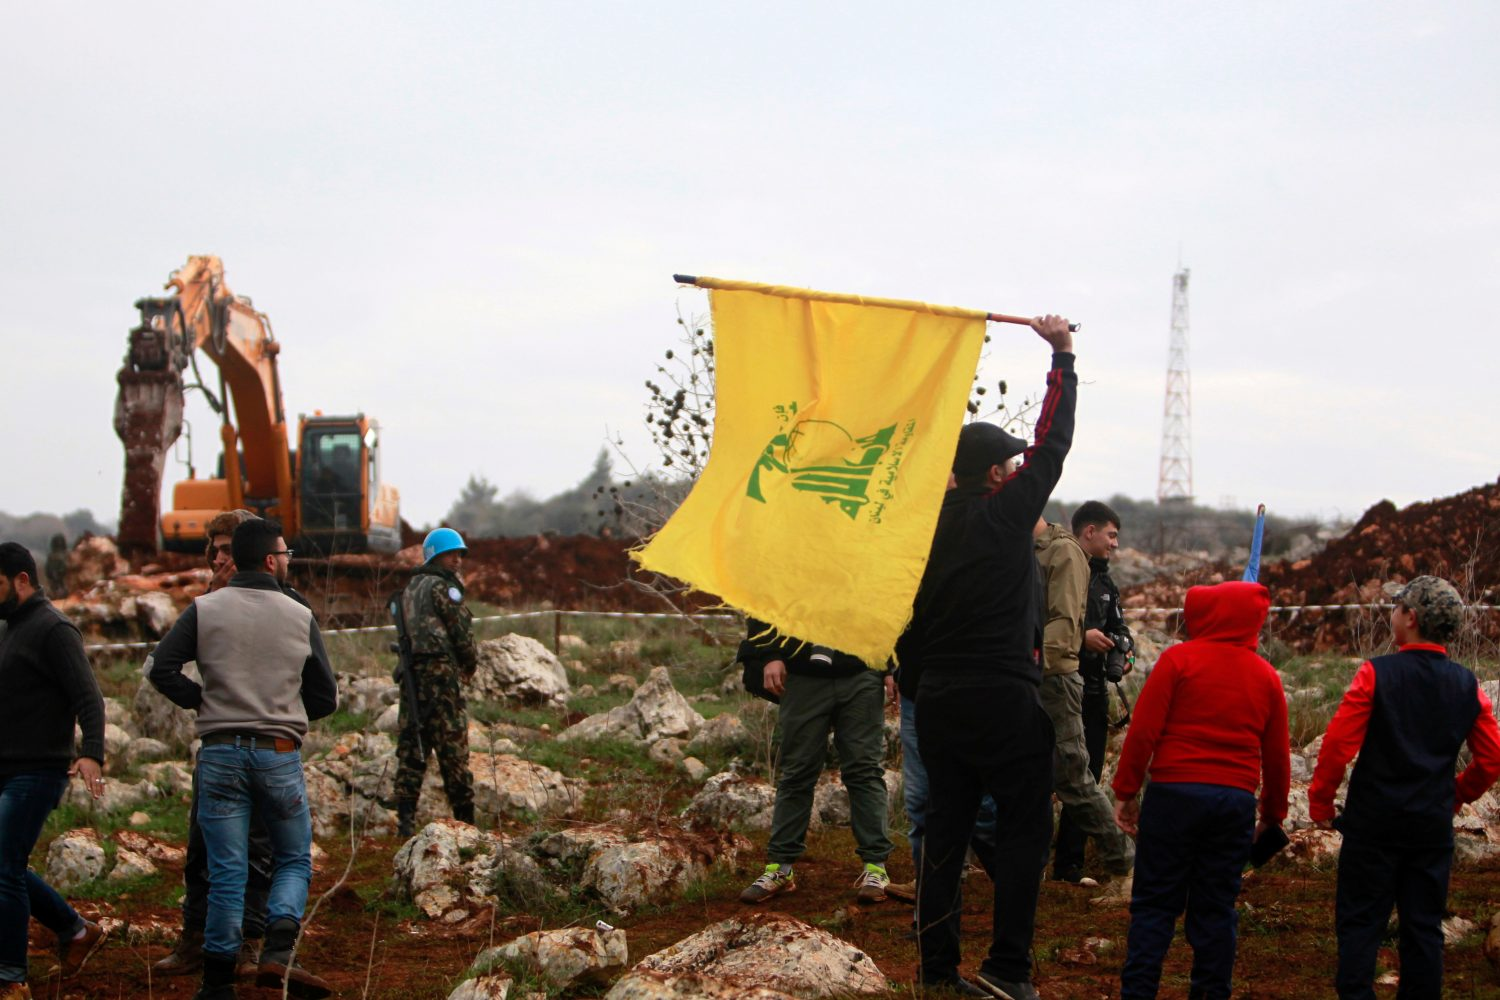 FILE PHOTO: A man holds a Hezbollah flag at Meis al-Jabal village in south Lebanon, December 9, 2018. REUTERS/Aziz Taher